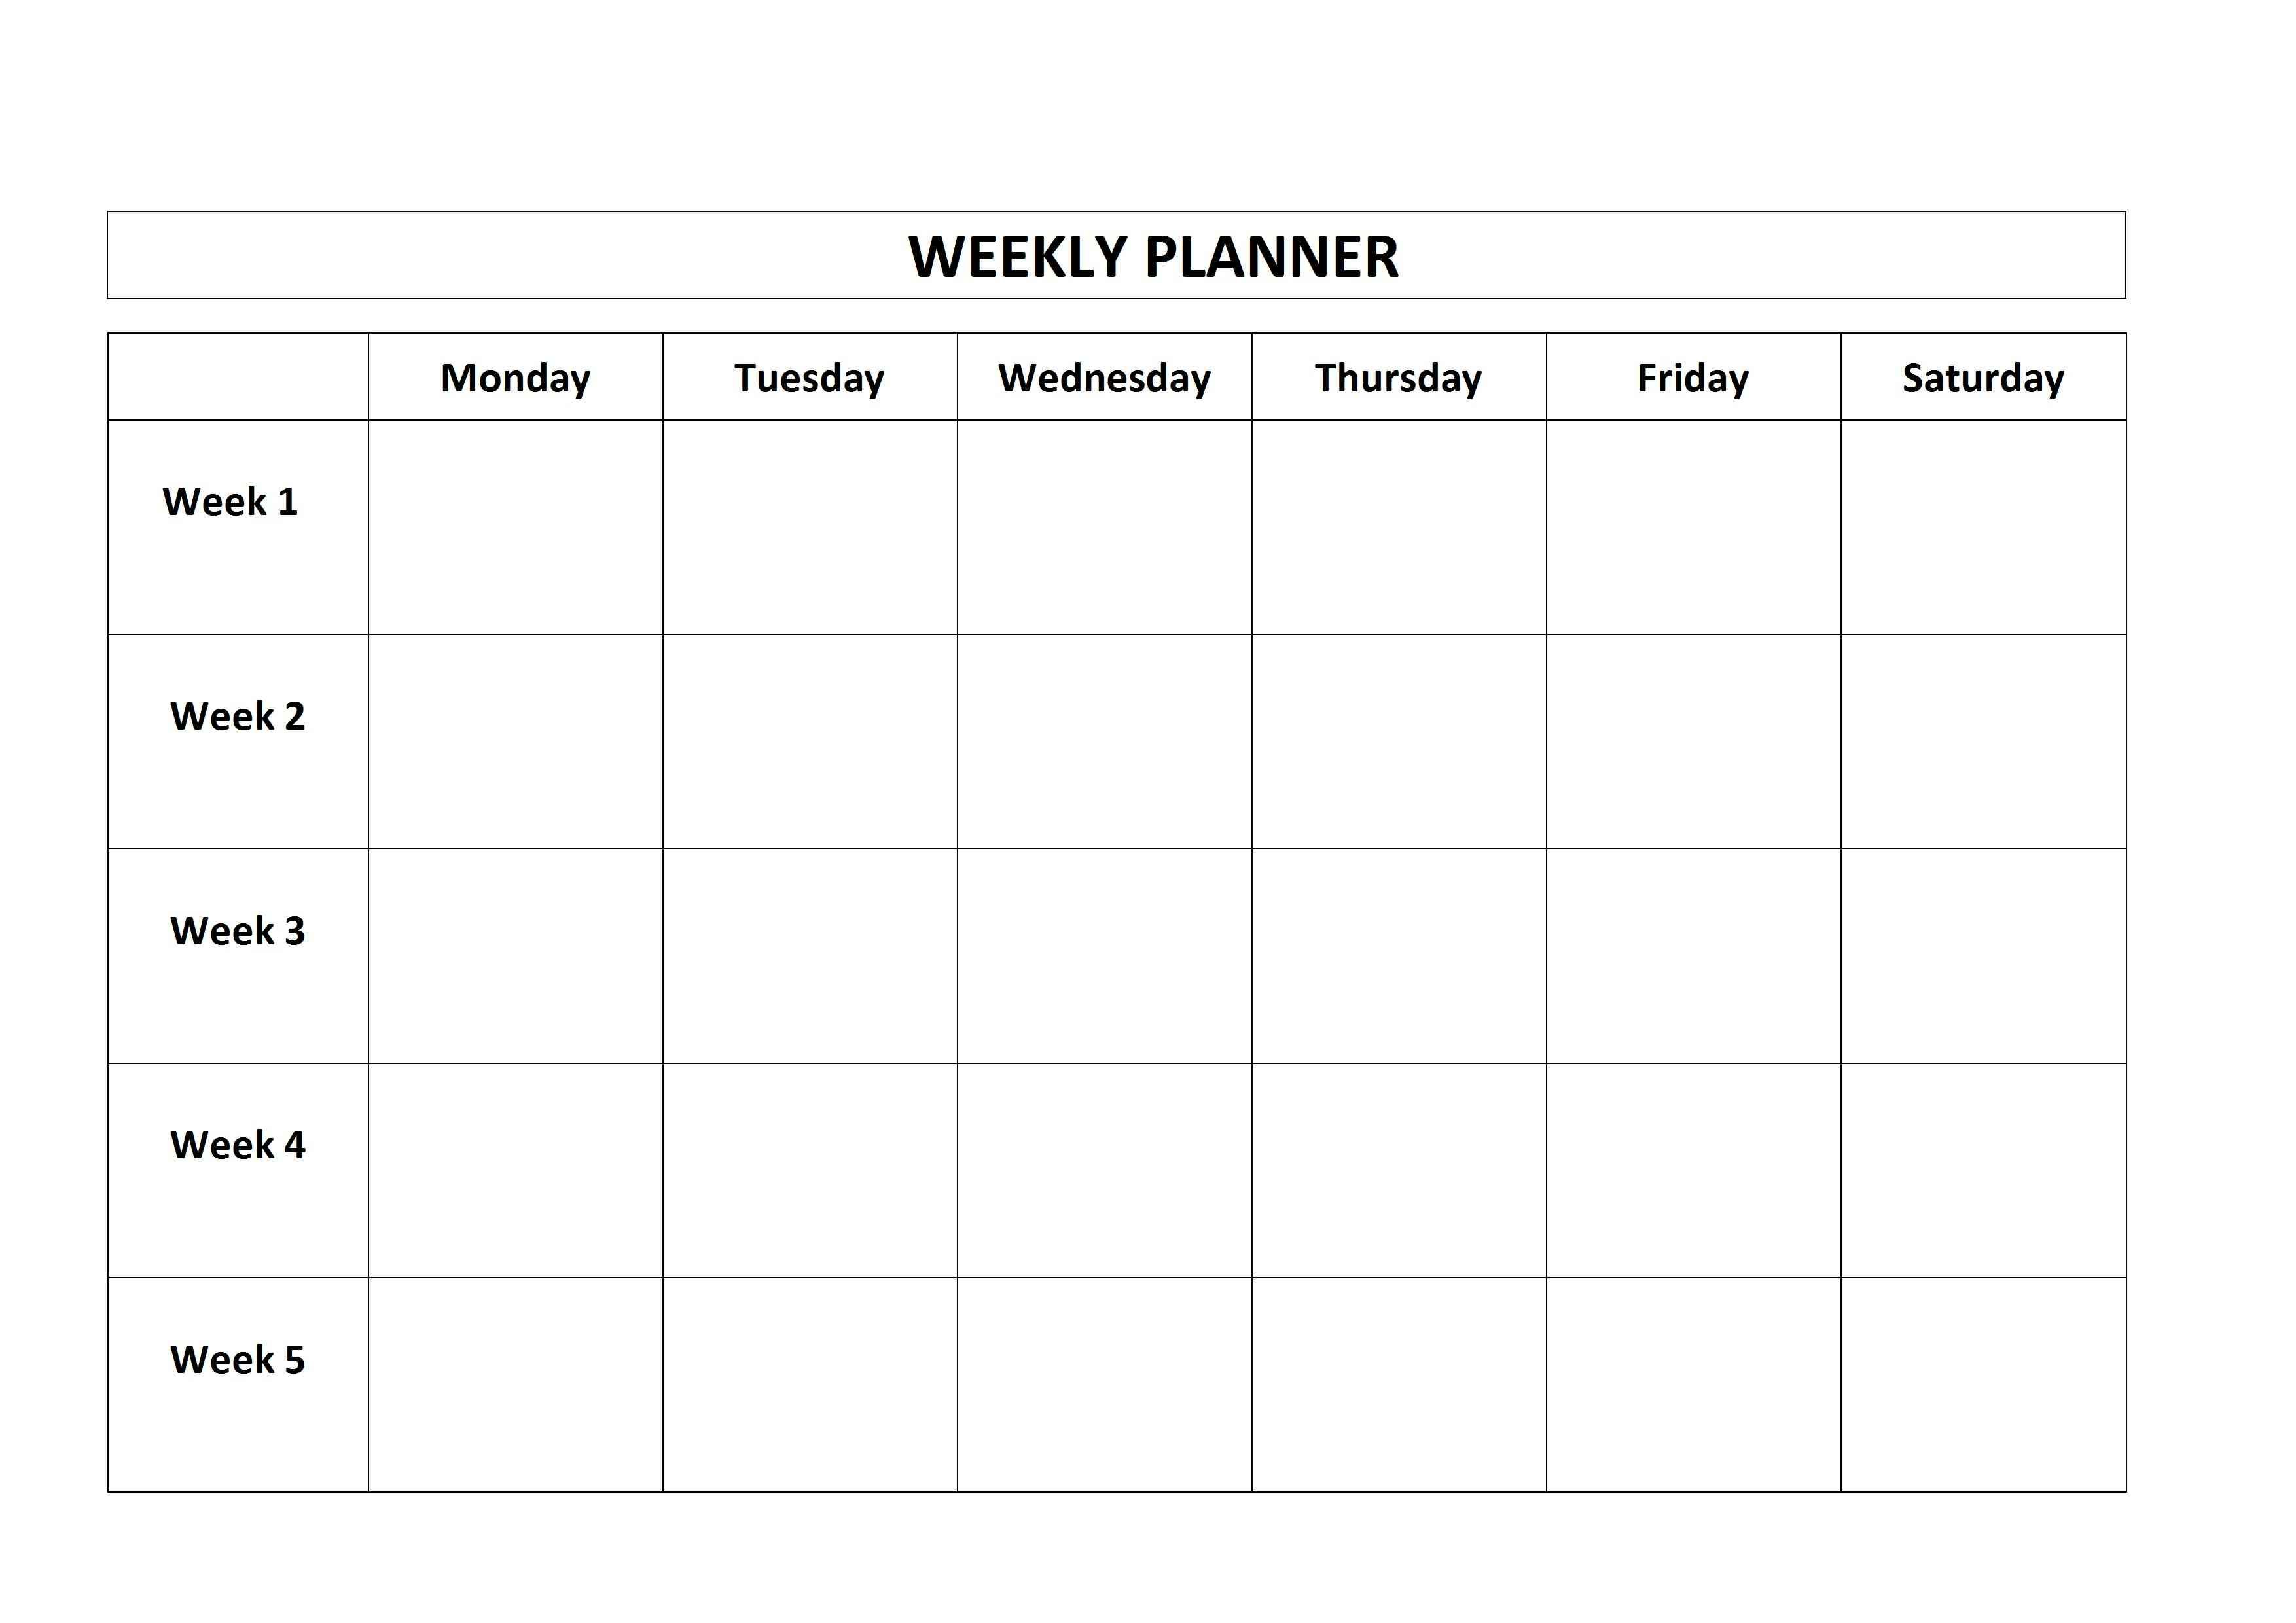 Free Printable Weekly Planner Monday Friday School Calendar On with regard to Blank Weekly Monday Through Friday Calendar Template